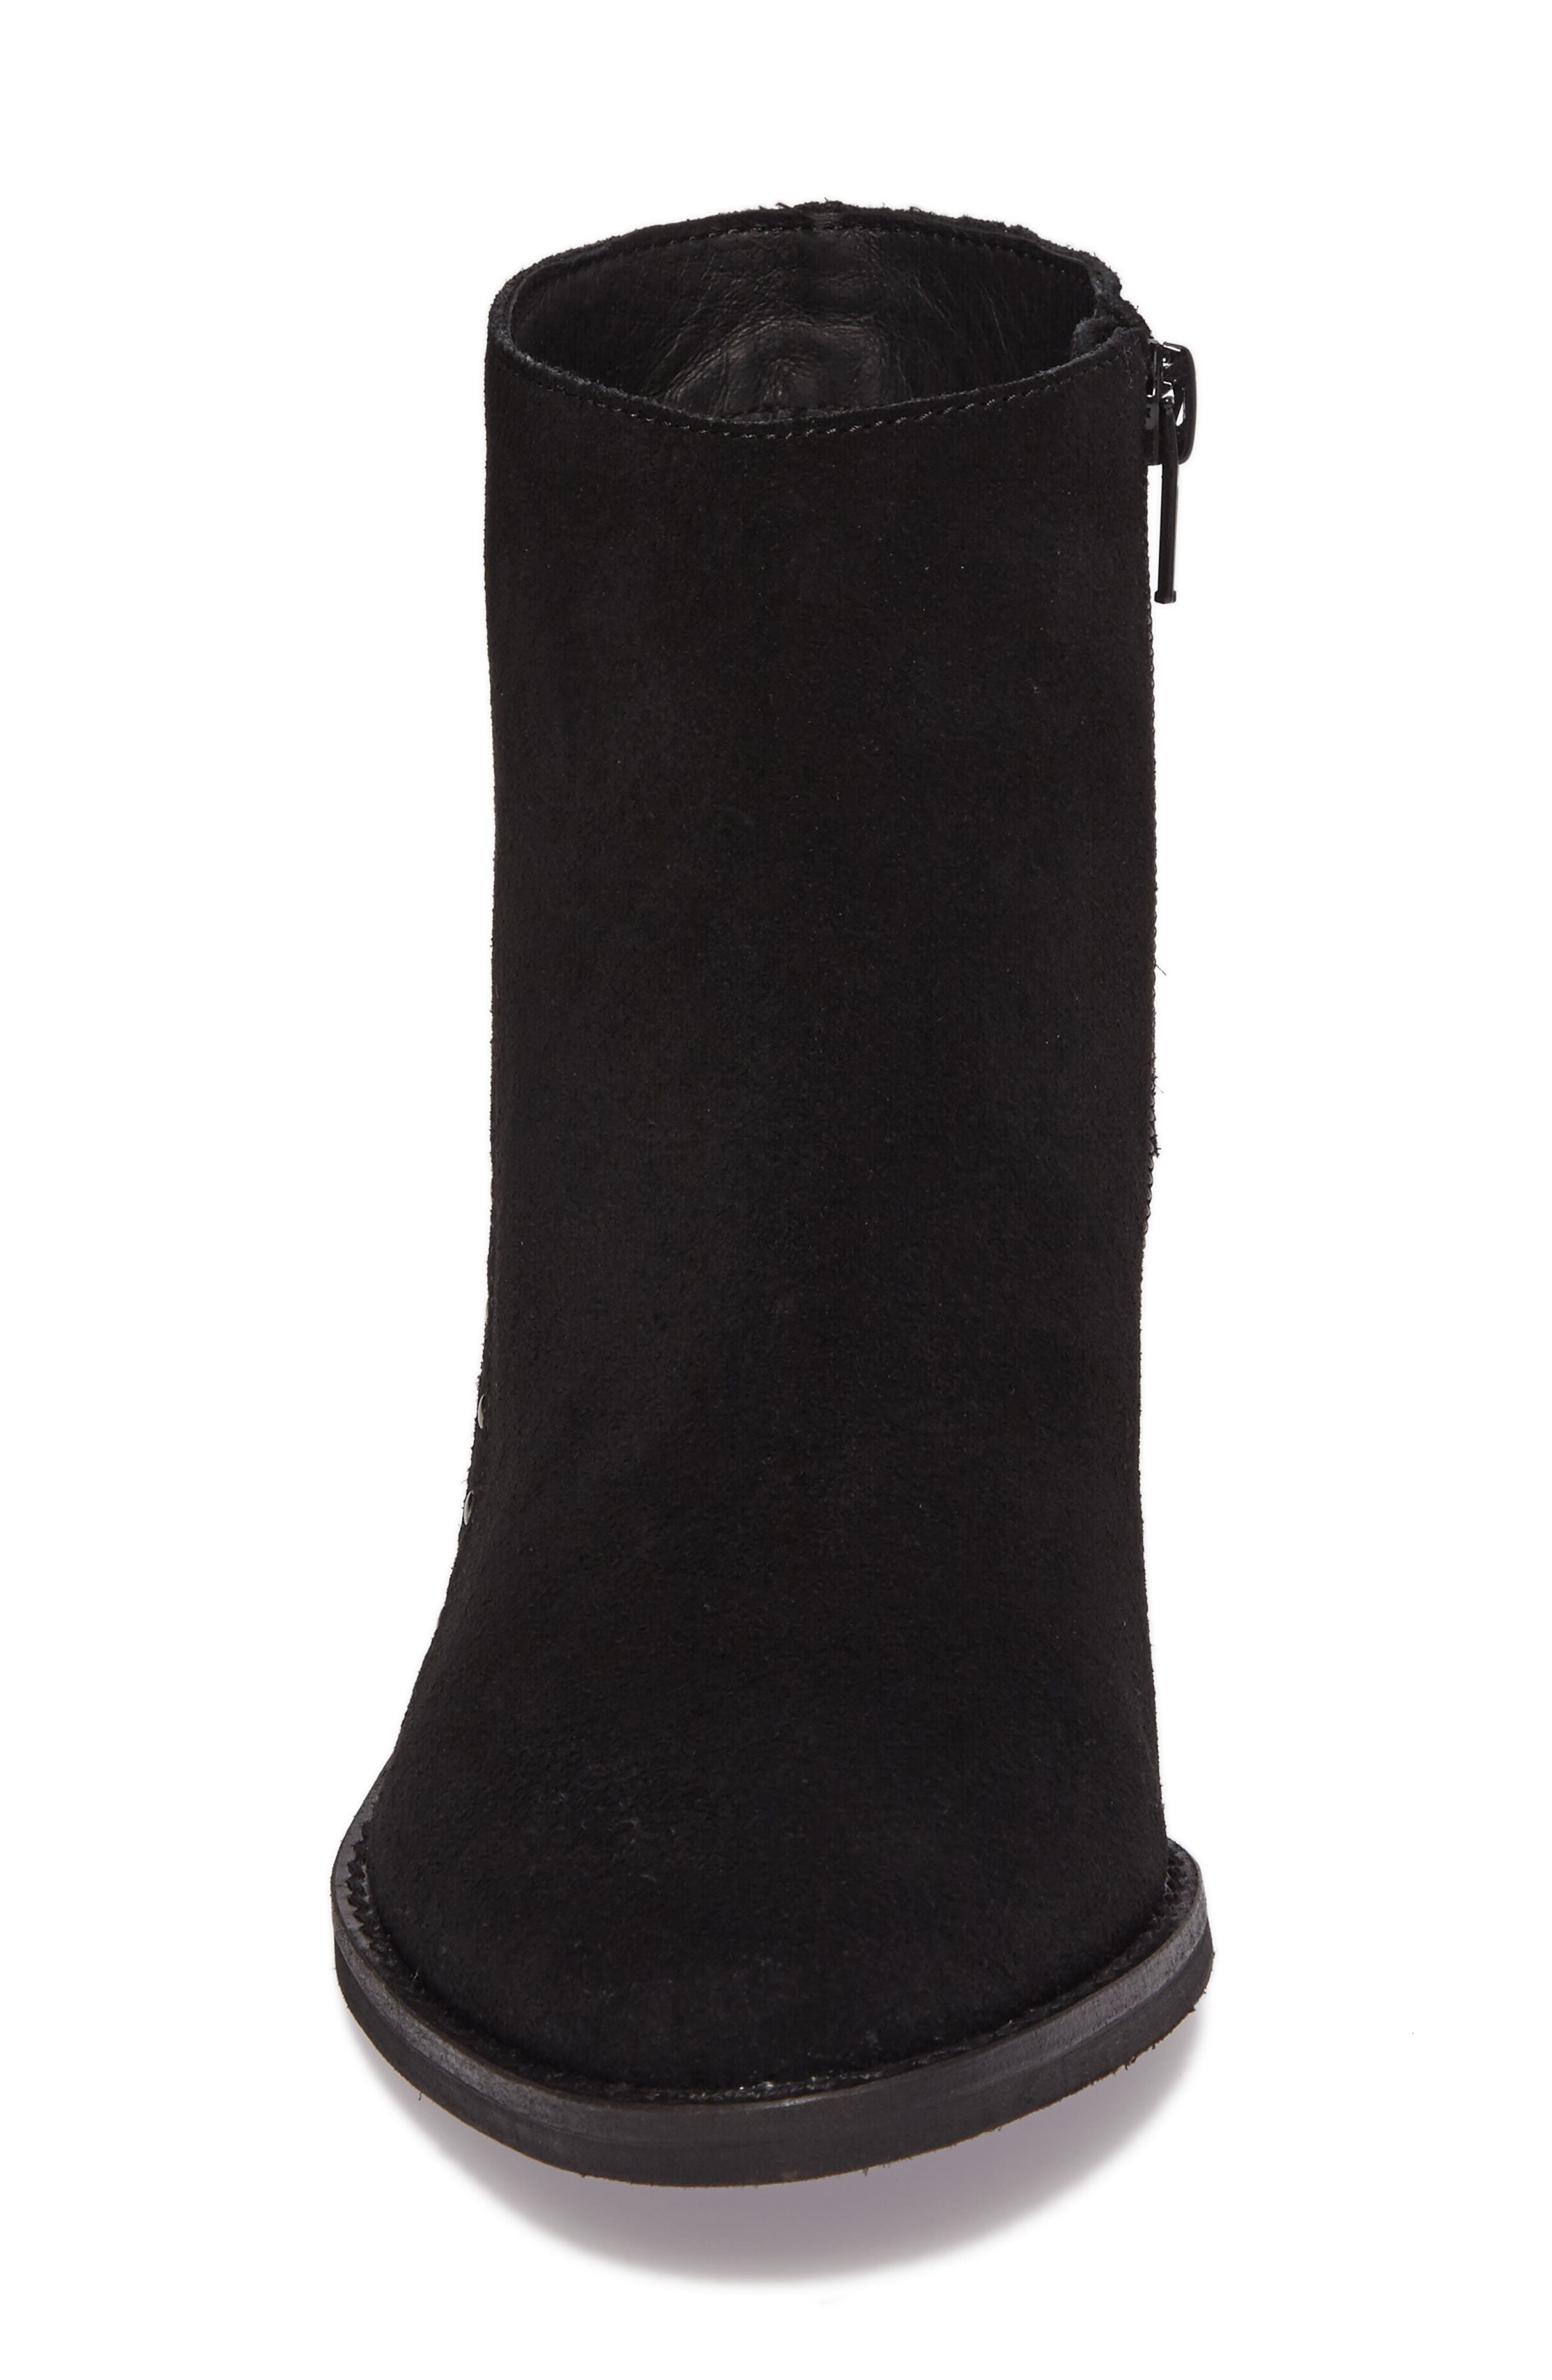 Irven Stud Bootie,                             Alternate thumbnail 4, color,                             Black Suede